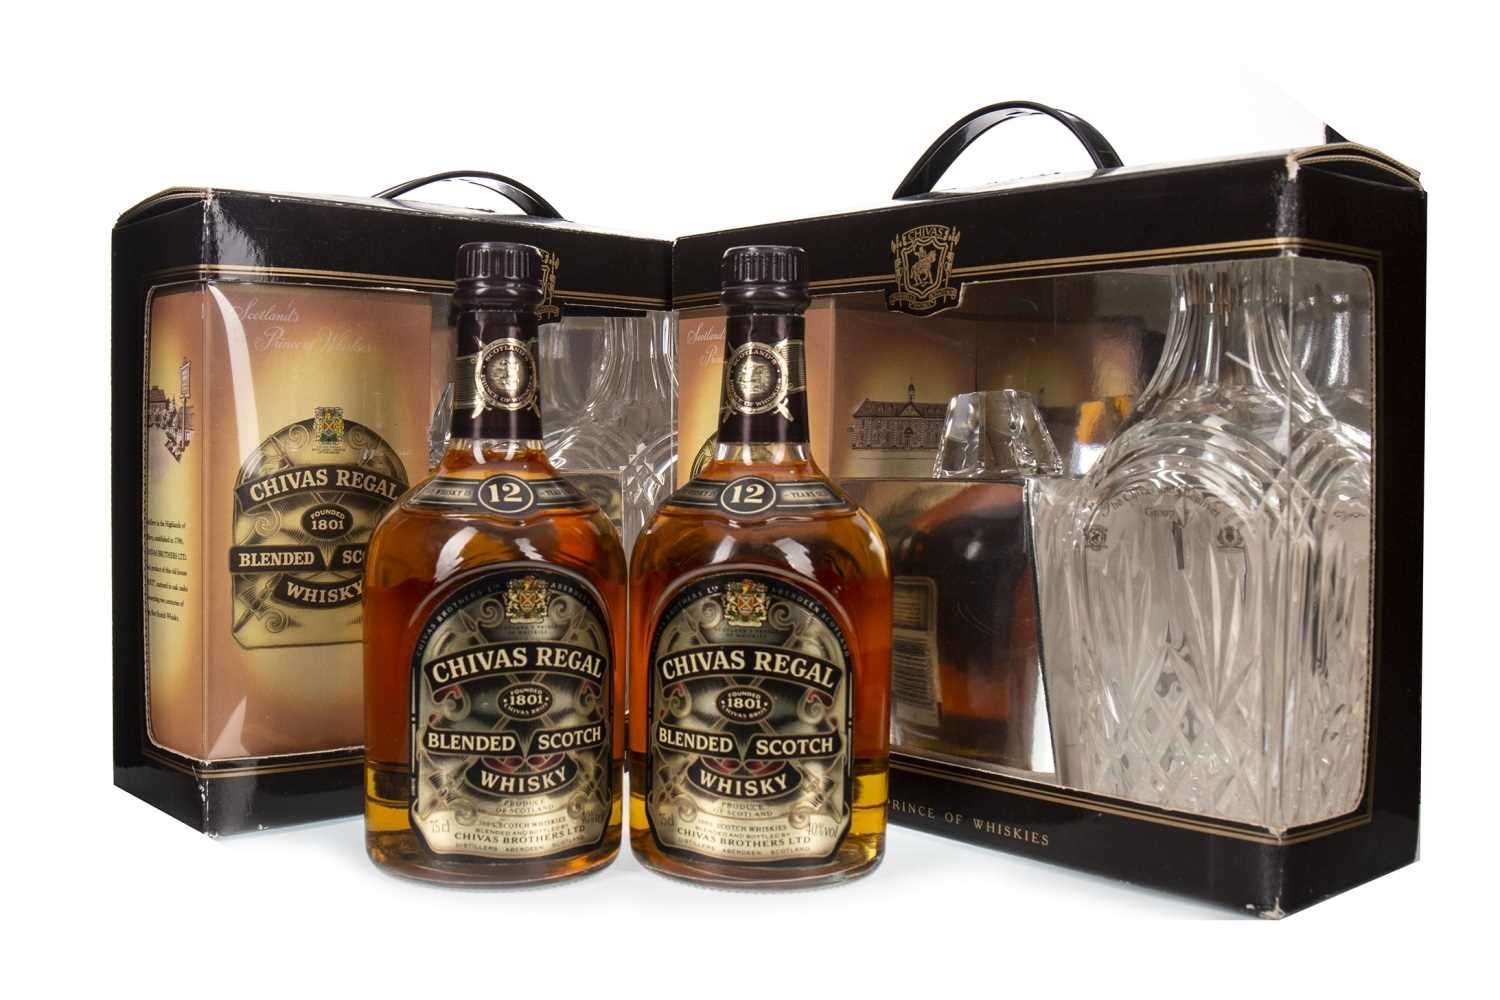 Lot 419-TWO BOTTLES OF CHIVAS REGAL AGED 12 YEARS WITH CRYSTAL DECANTERS